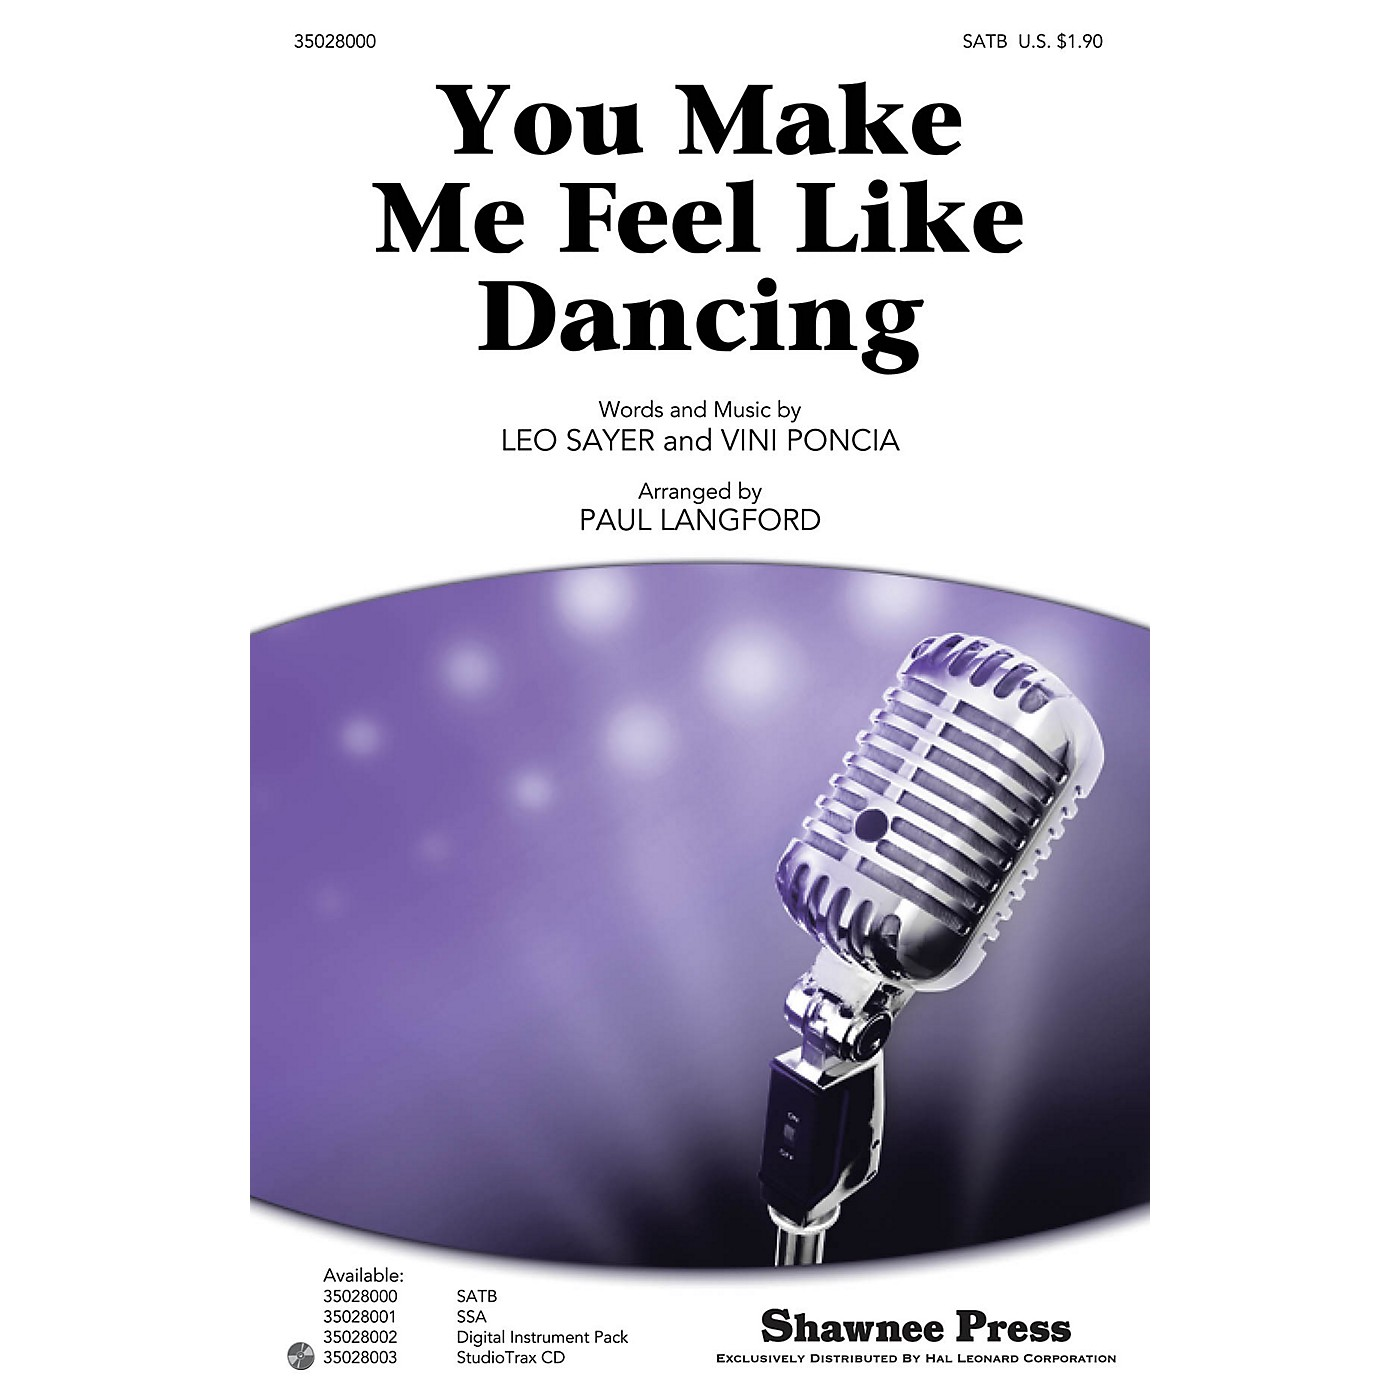 Shawnee Press You Make Me Feel Like Dancing Studiotrax CD by Leo Sayer Arranged by Paul Langford thumbnail